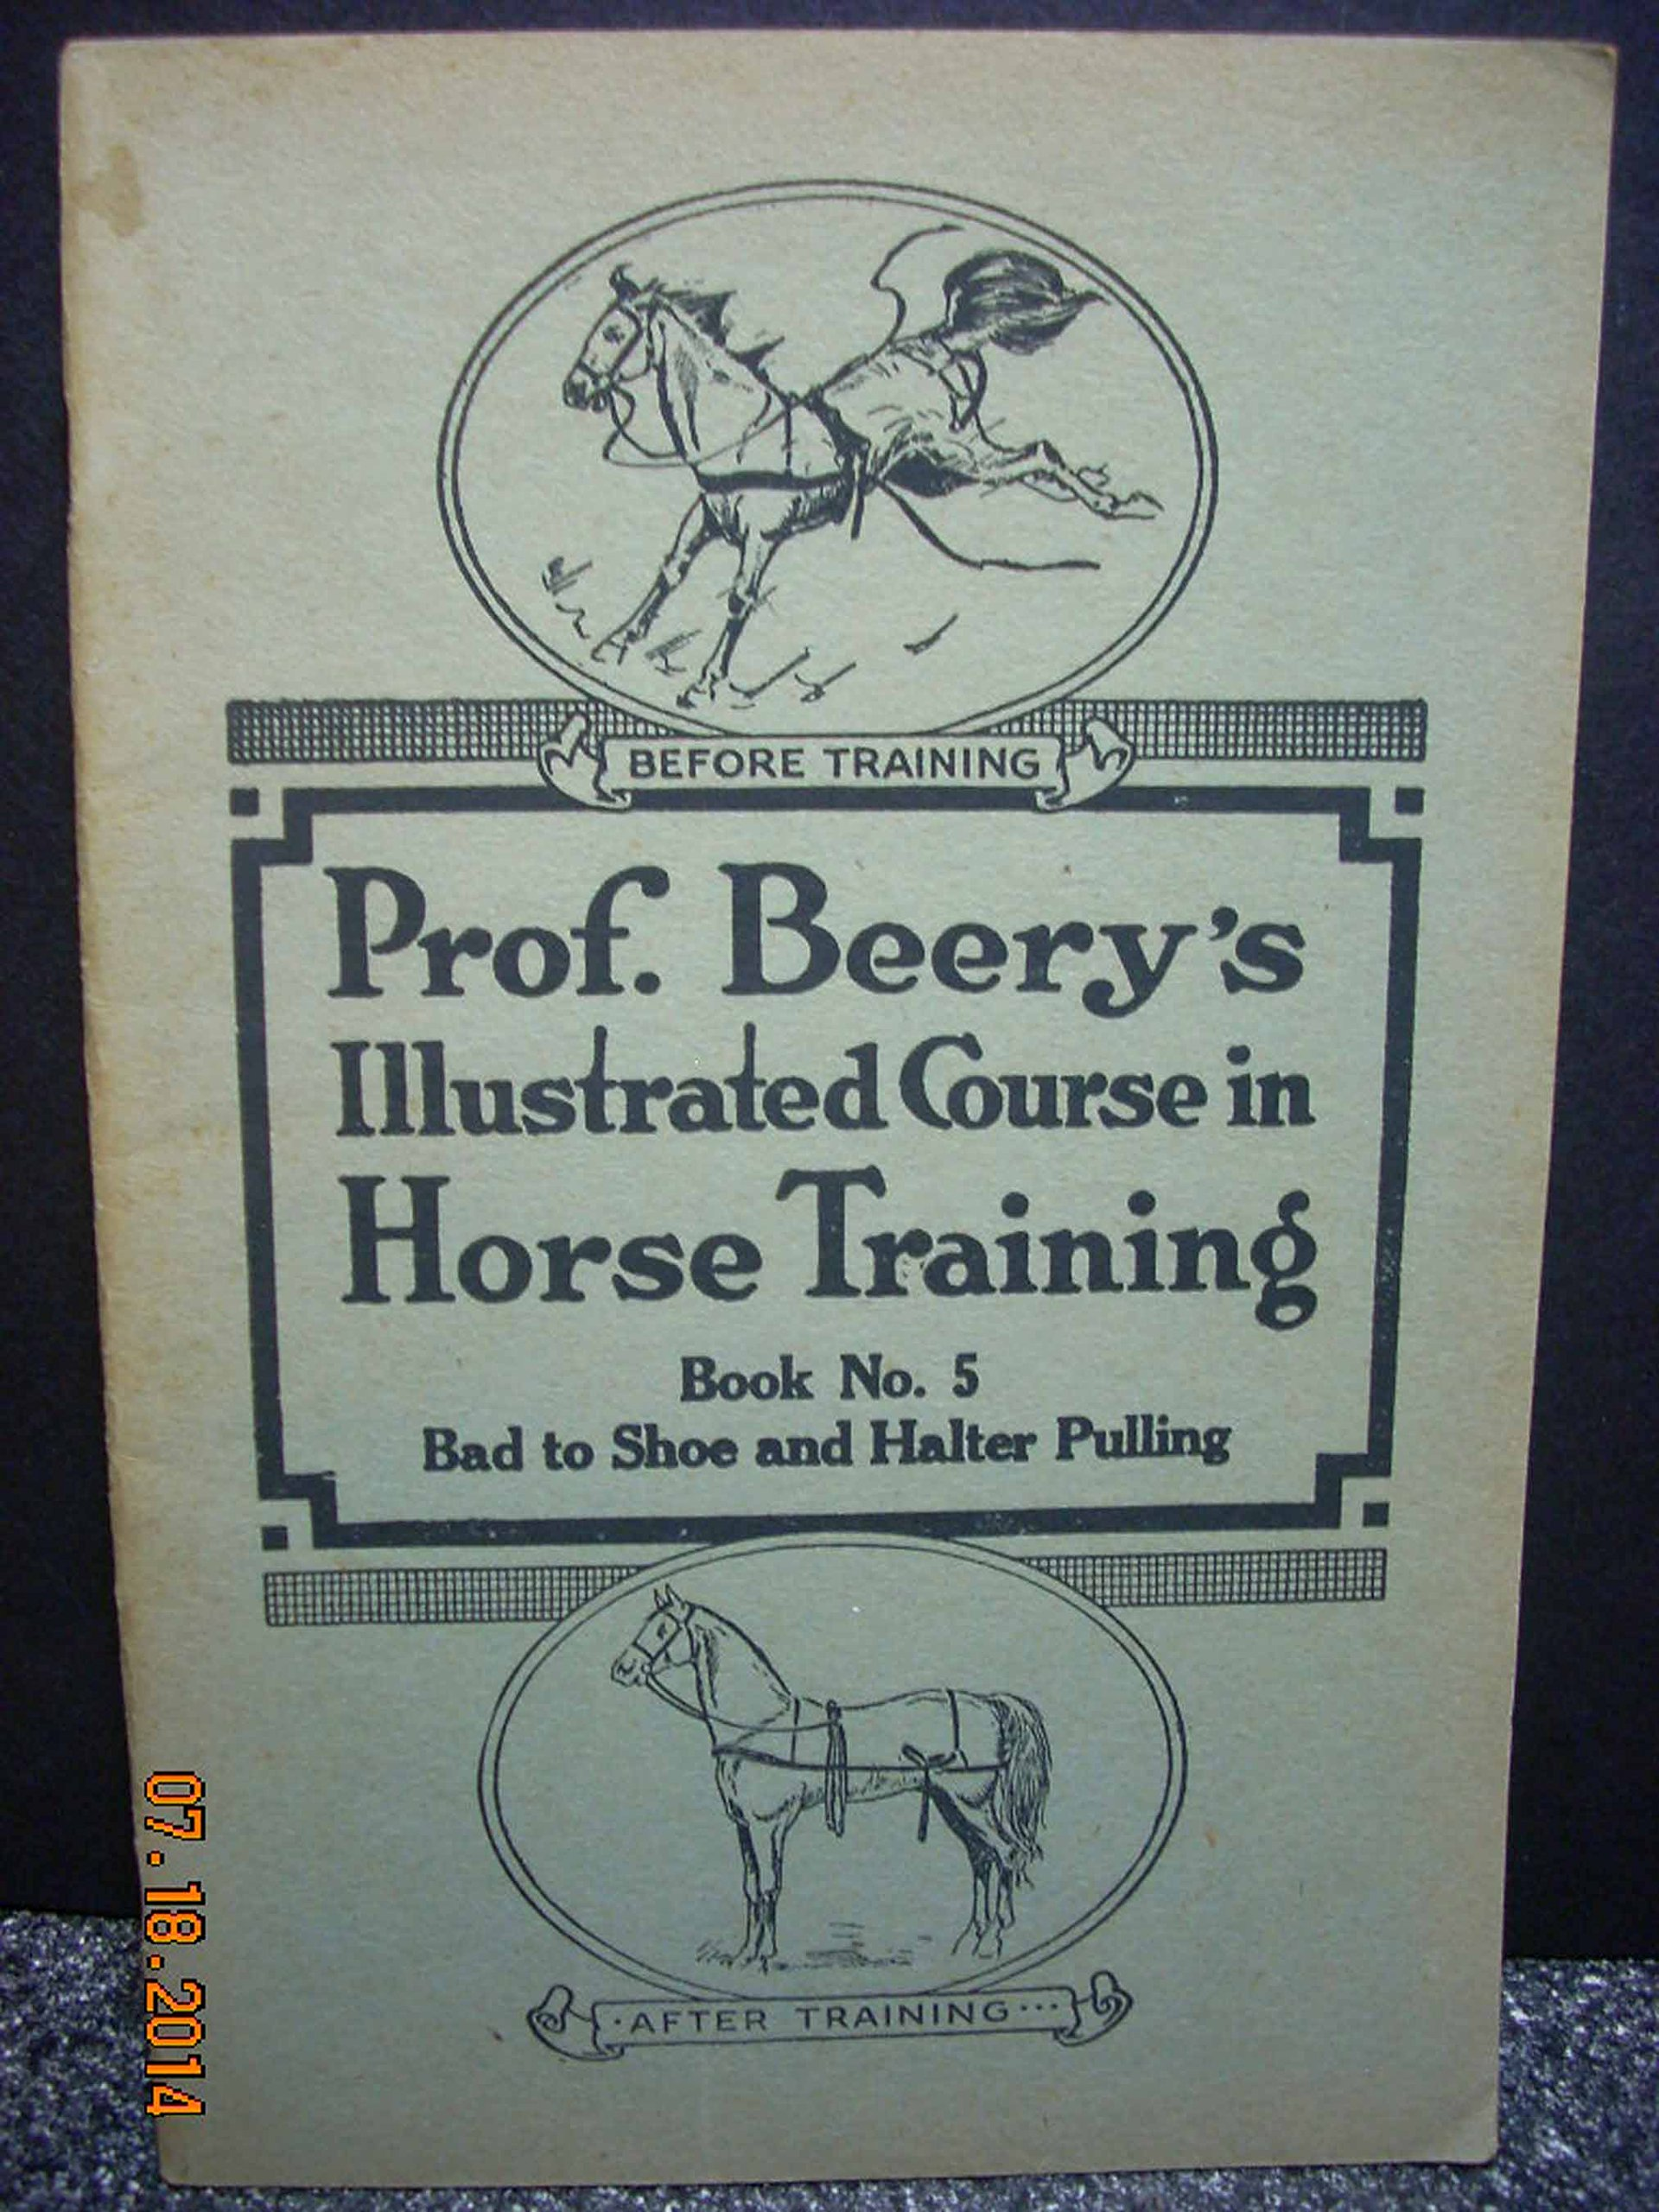 prof-beery-s-illustrated-course-in-horse-training-book-no-5-bad-to-shoe-and-halter-pulling